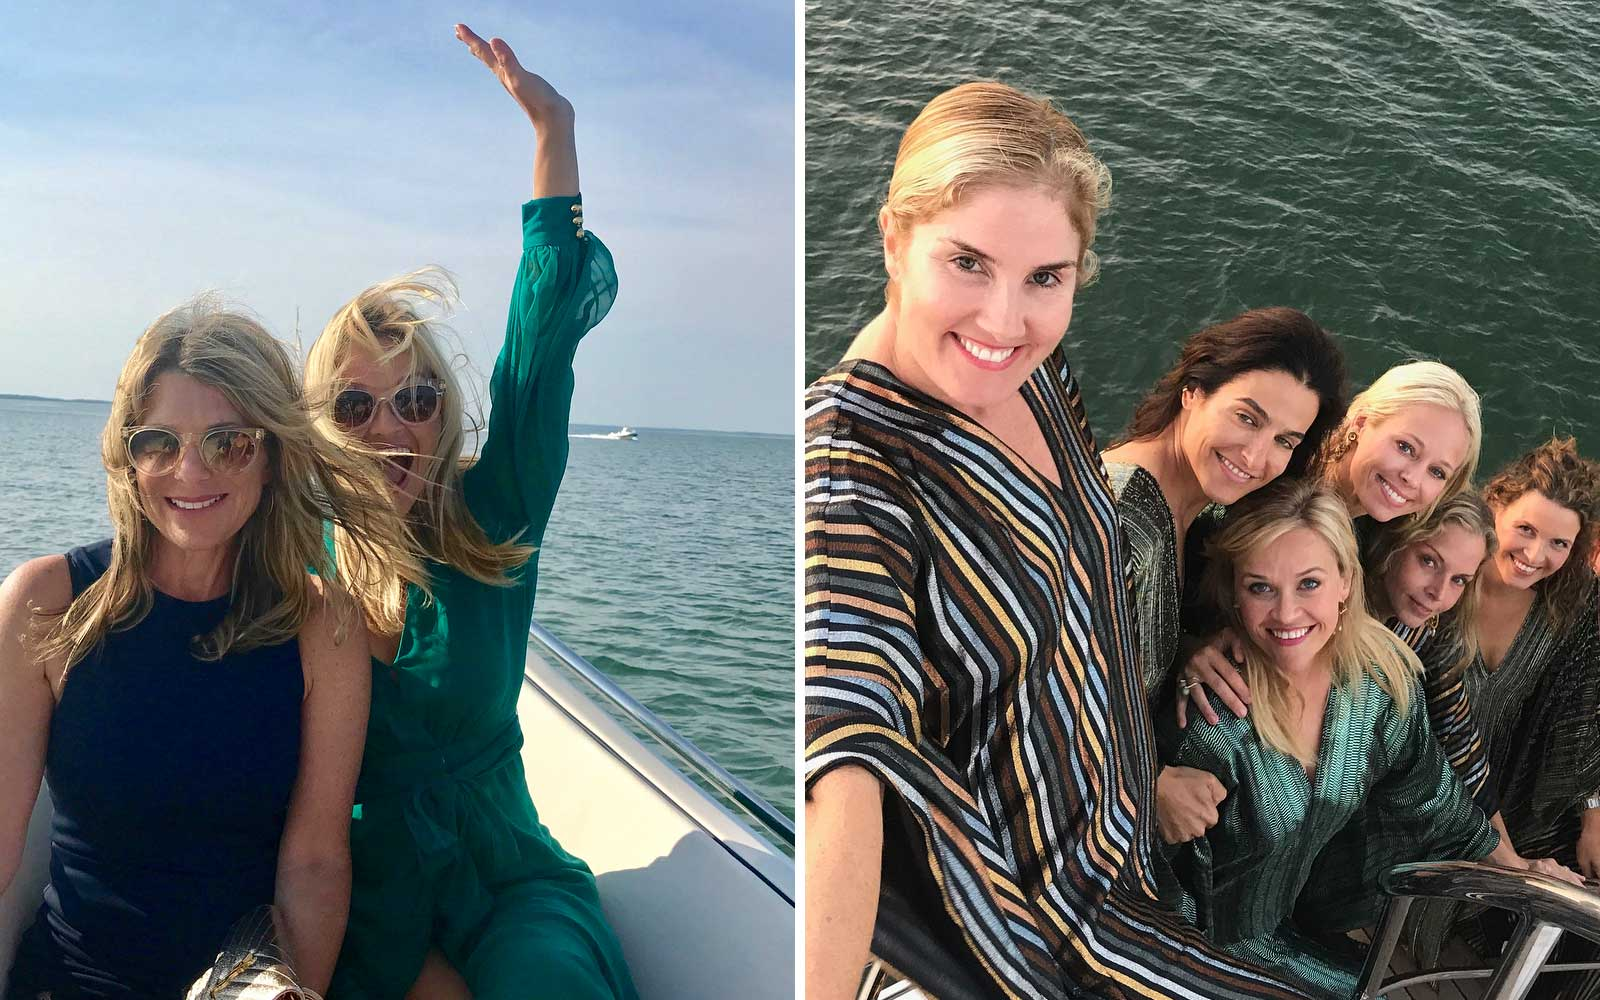 Reese Witherspoon's Vacation Photos Will Inspire Your Next Girls Trip